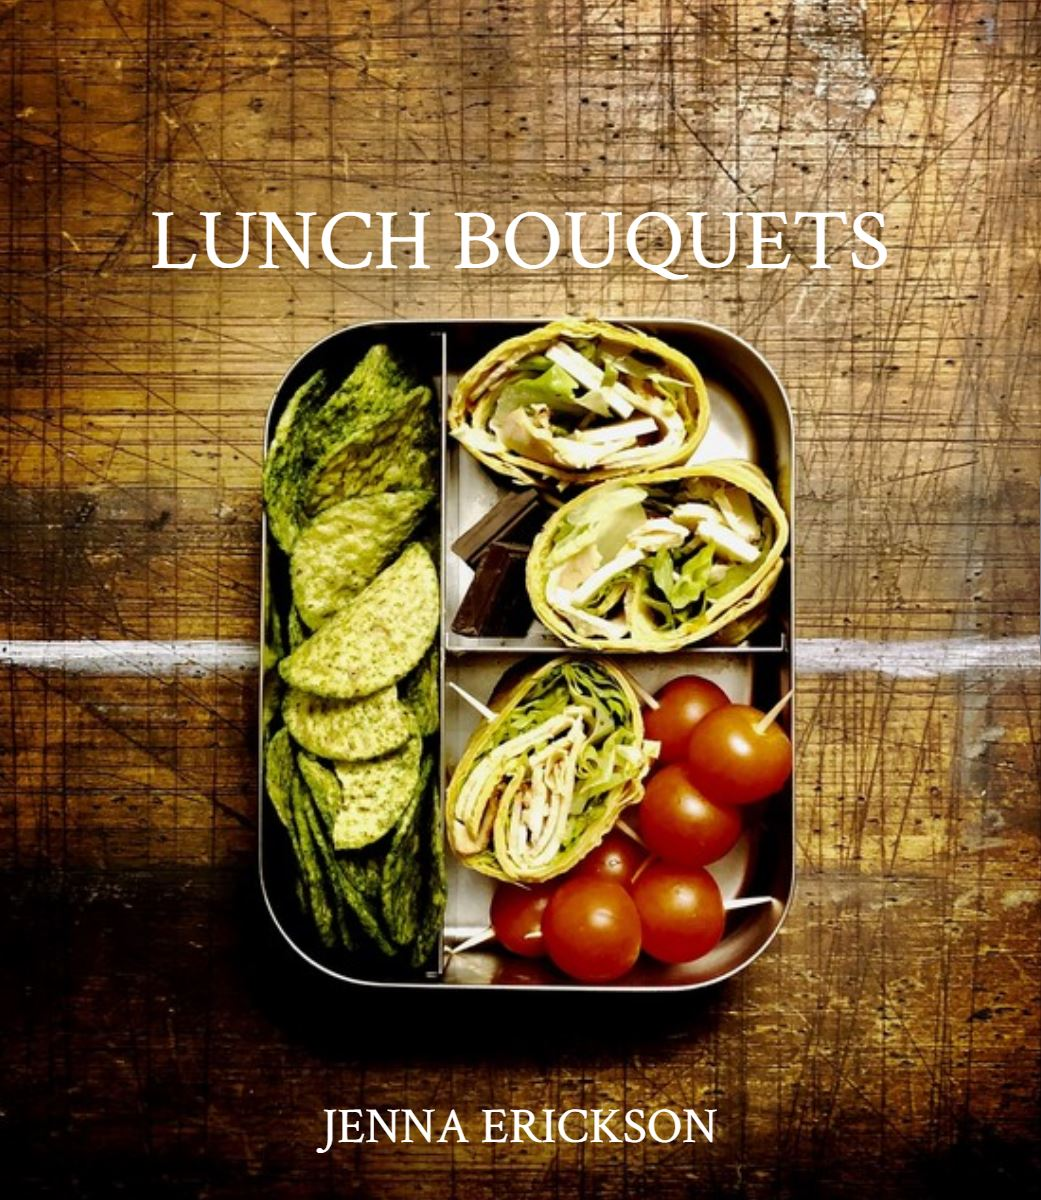 Lunch Bouquets Cover.JPG